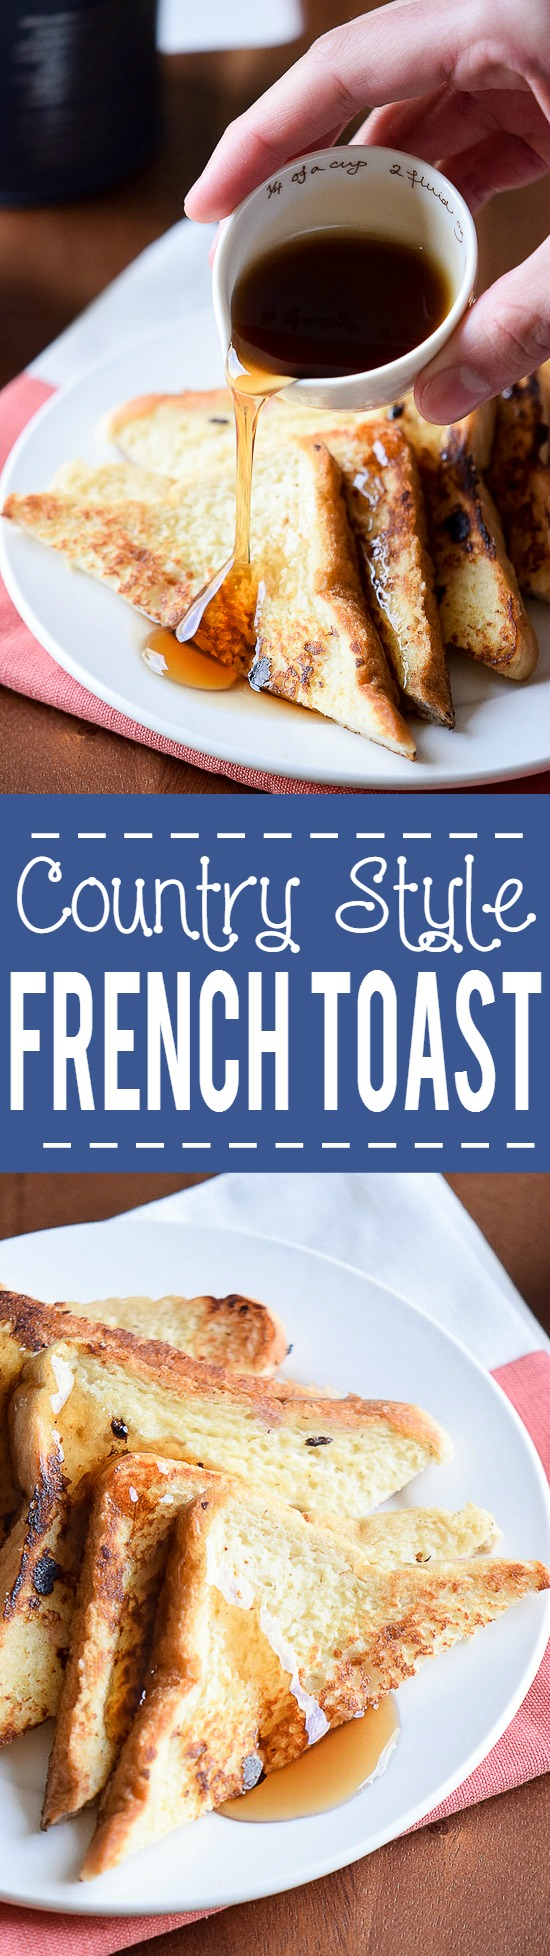 Country French Toast recipe - Classic Country French Toast recipe with simple ingredients is quick and easy to whip up and makes a perfect, yummy breakfast. Top with butter, maple syrup, whipped cream, or berries. Love french toast for an easy breakfast recipe that kids will love!